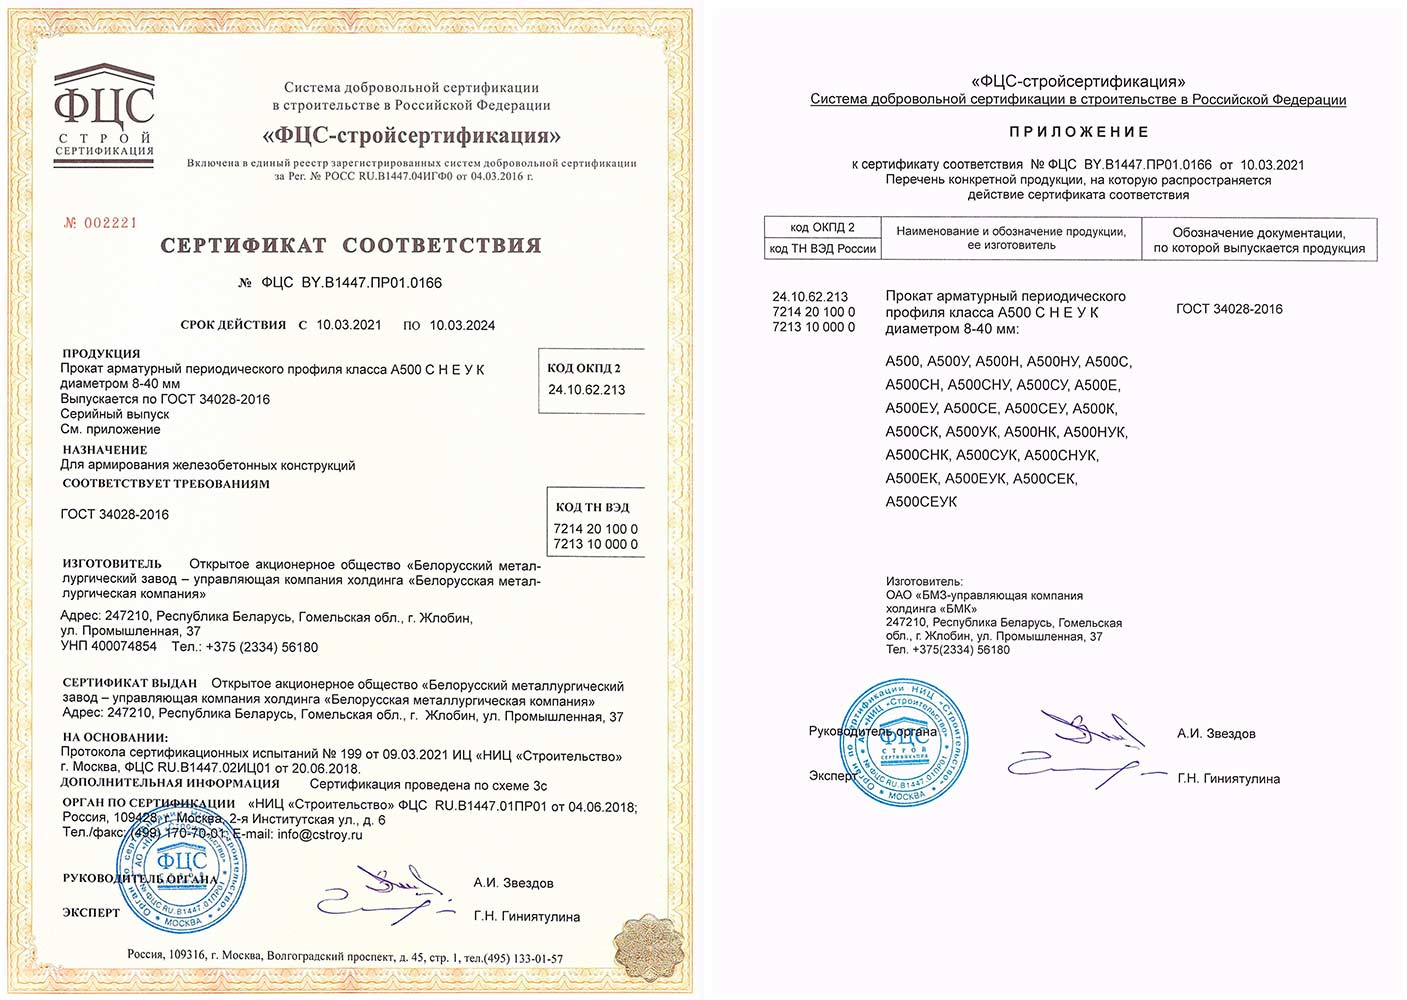 """Certificate № FCS BY.B1447З PRO 1.0059 """"FCS- stroicertification"""" (Russia) for production of reinforcing bars A500C Ø8-40 mm according to requirements GOST 34028-2016"""